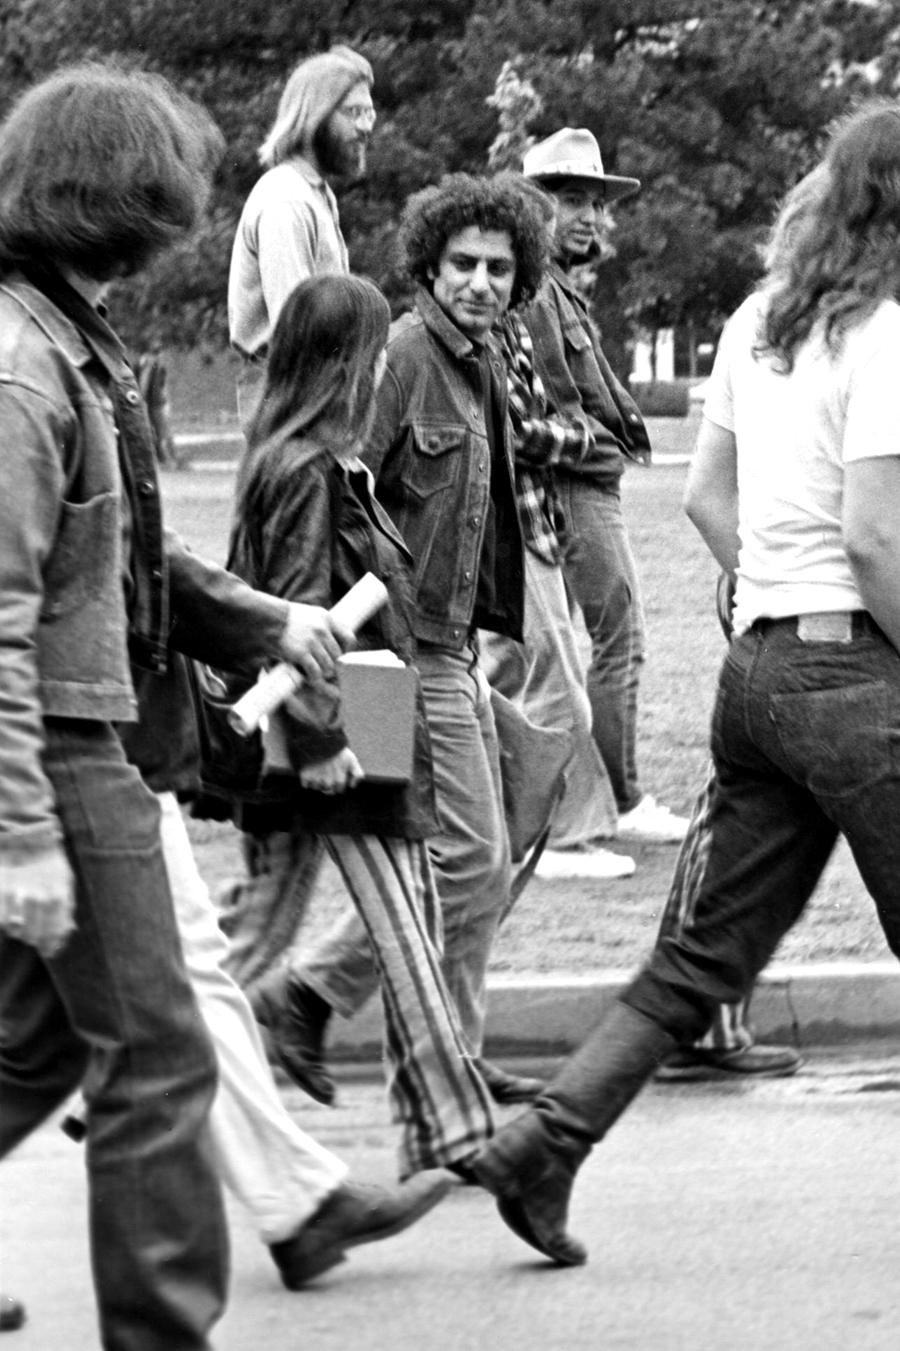 Abbie Hoffman visiting the University of Oklahoma to protest the Vietnam War, 1969. Courtesy: Wikimedia Commons